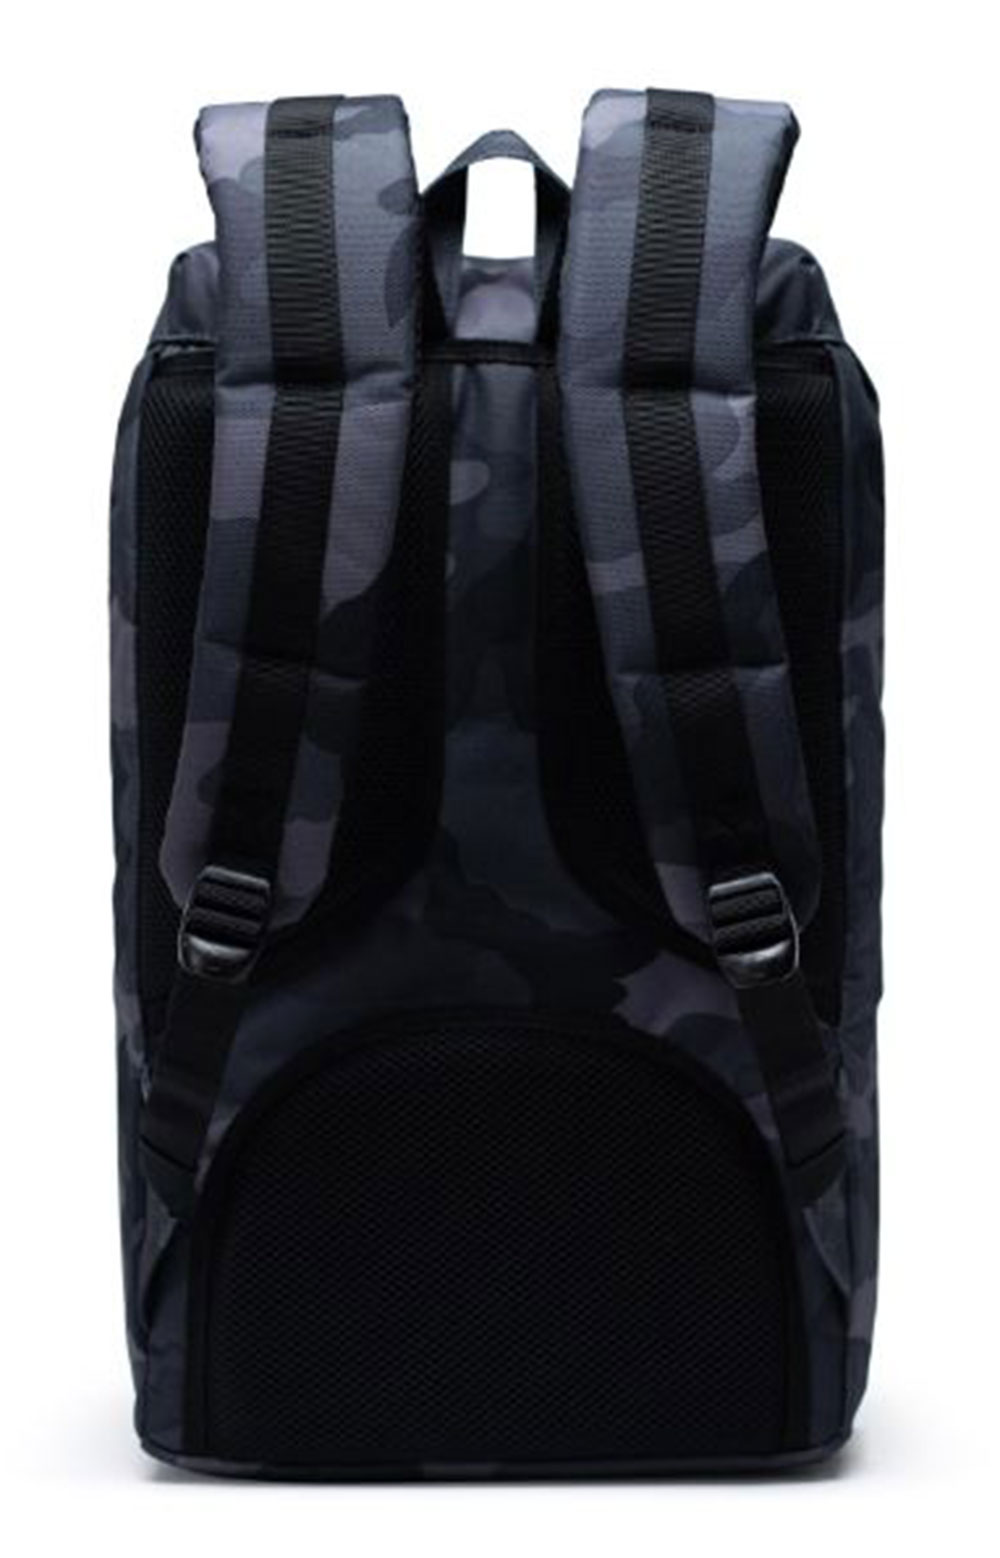 Little America Backpack - Night Camo 4